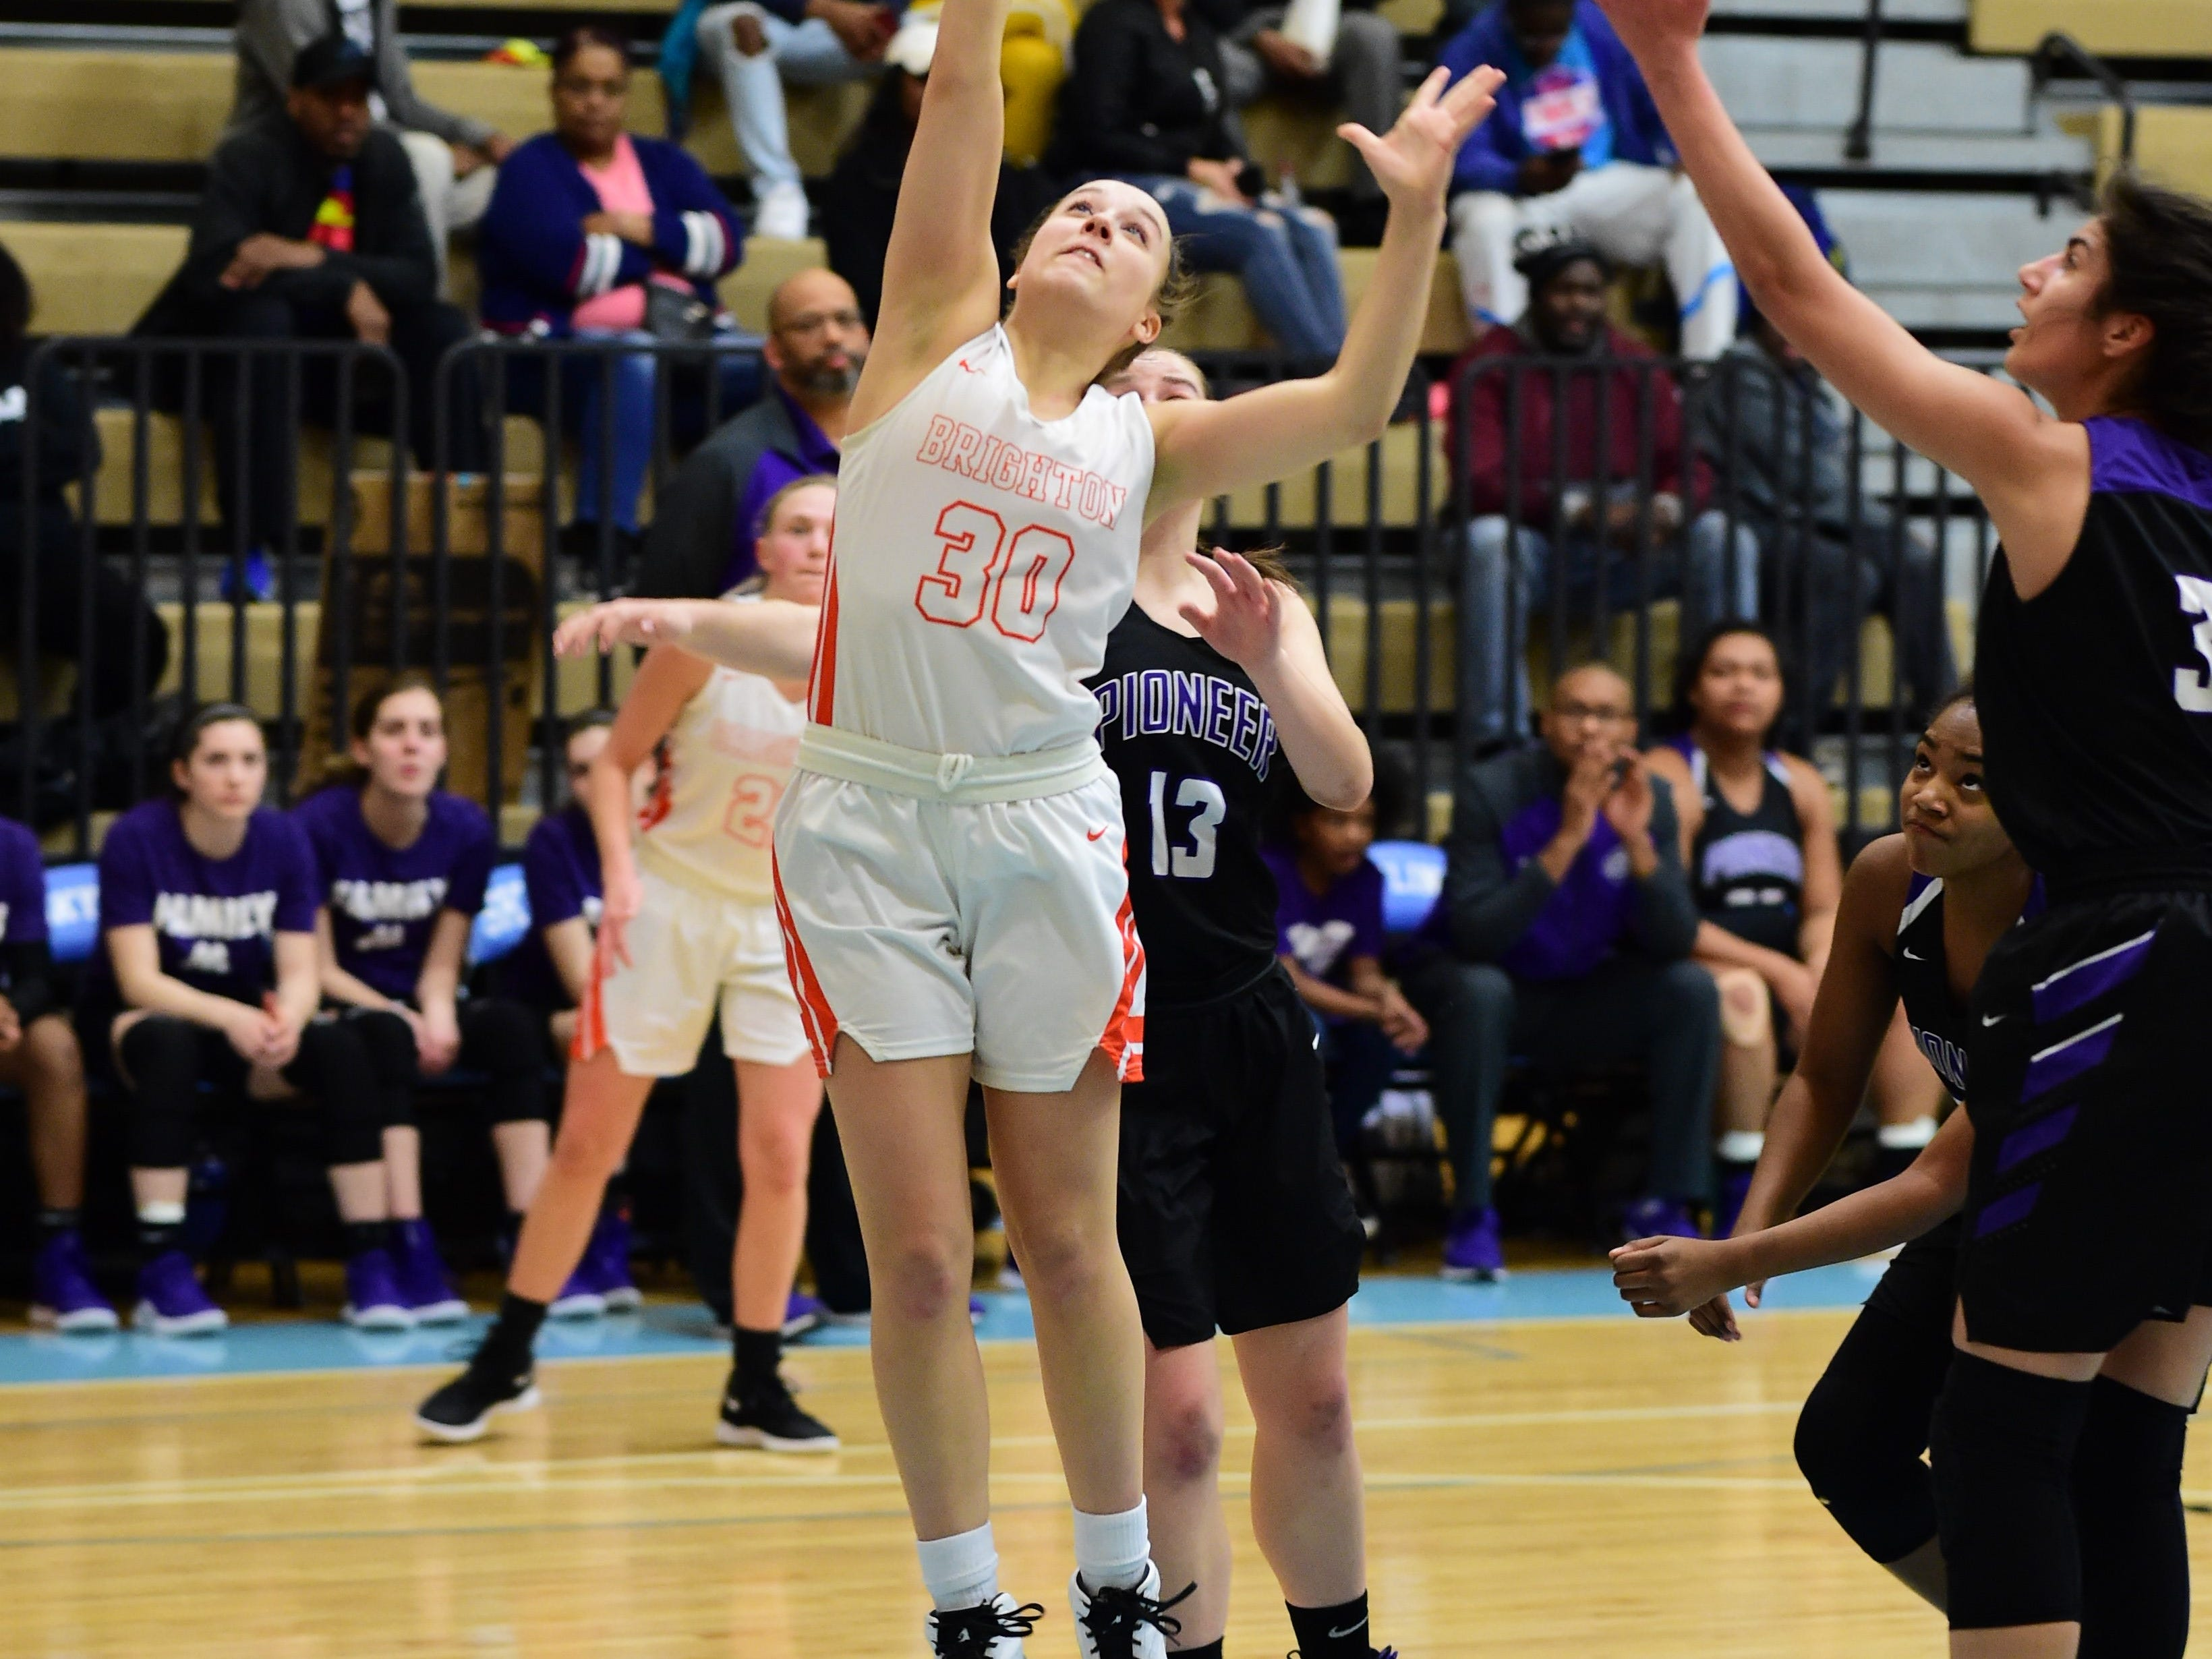 Brighton senior Lauren Brown goes up for a basket against Ann Arbor Pioneer on March 11, 2019.